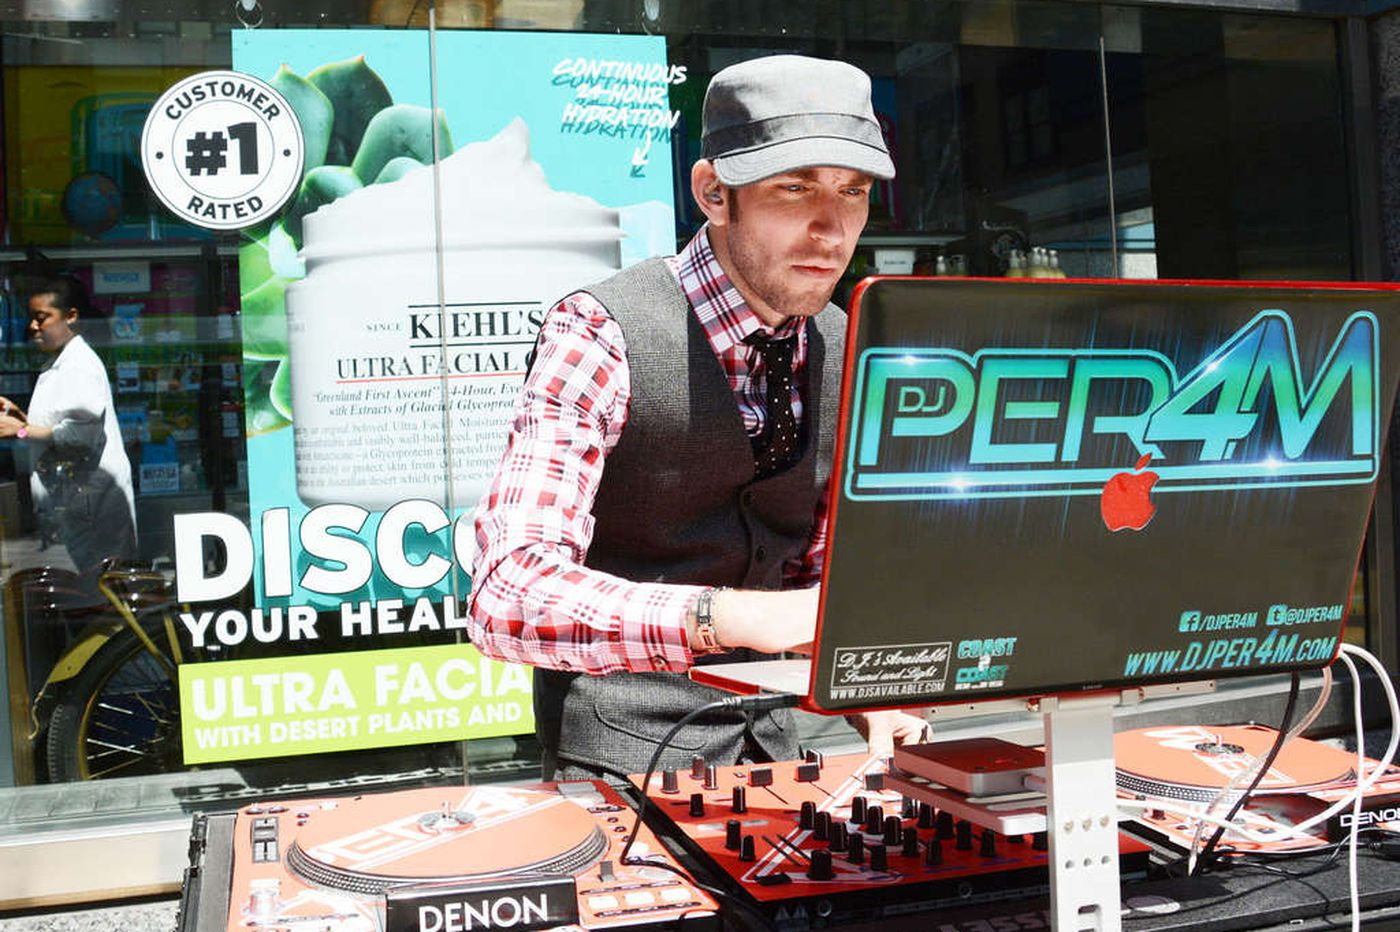 Din of iniquity: Liberty Place hires DJs to drown out Black Israelites